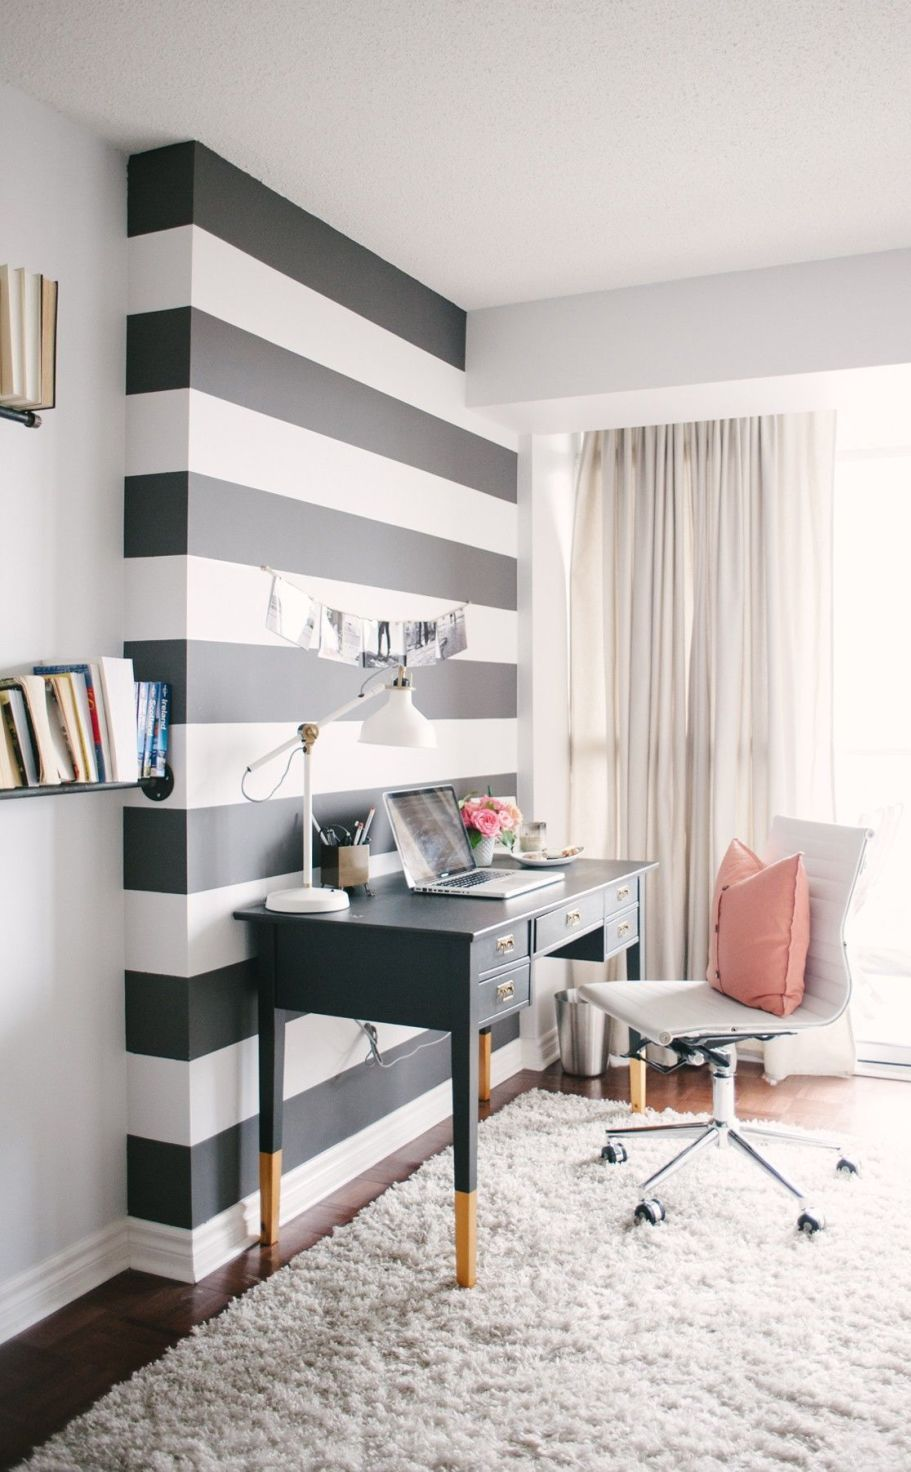 Pleasing 15 Amazing Home Office Designs Largest Home Design Picture Inspirations Pitcheantrous